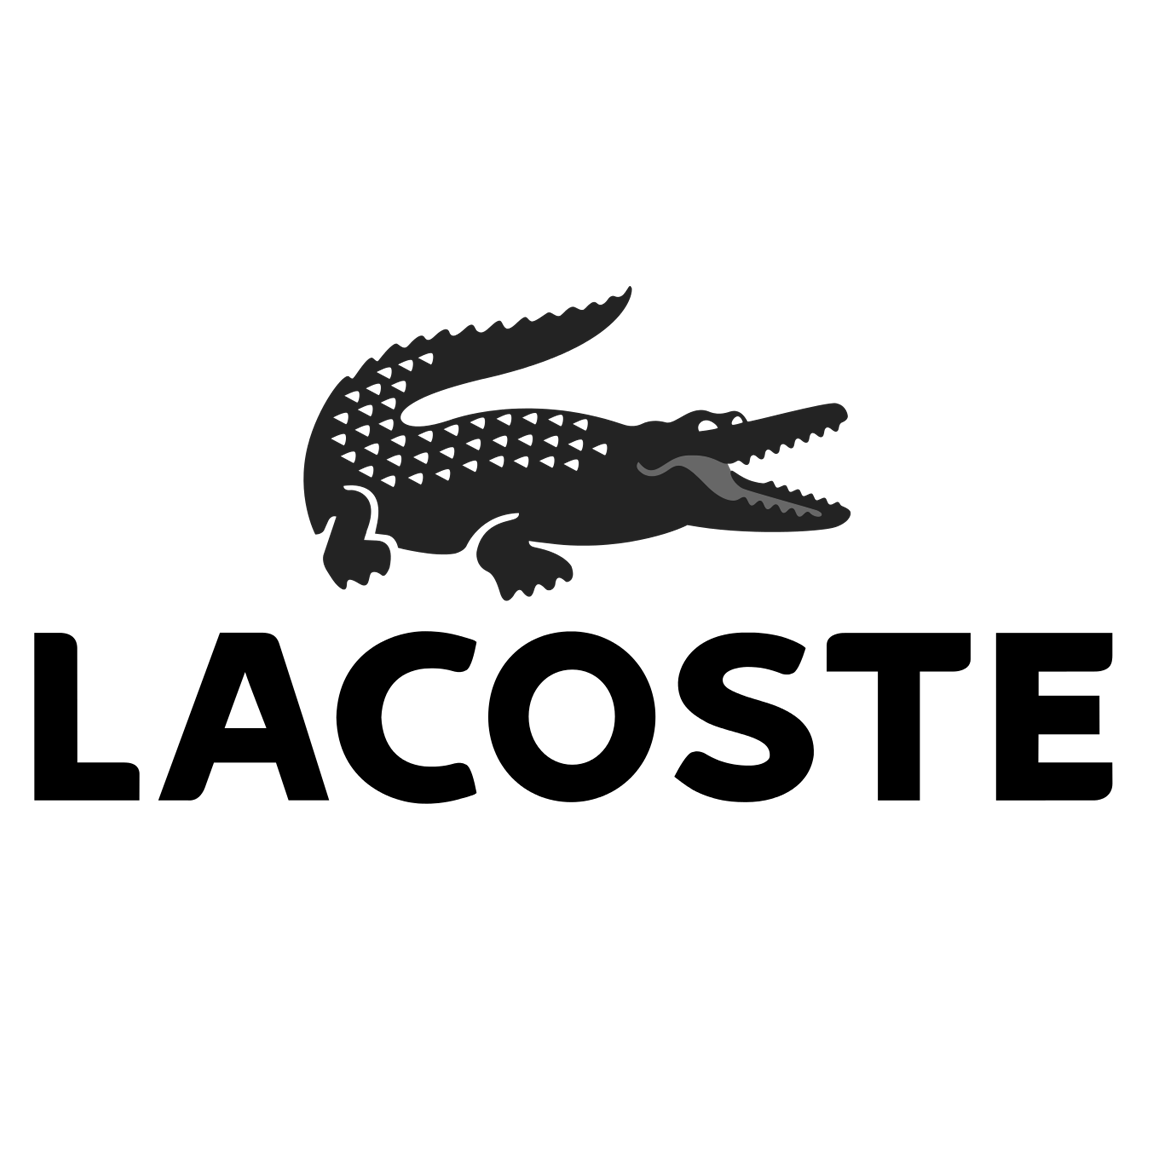 Lacoste_logo_BW.png